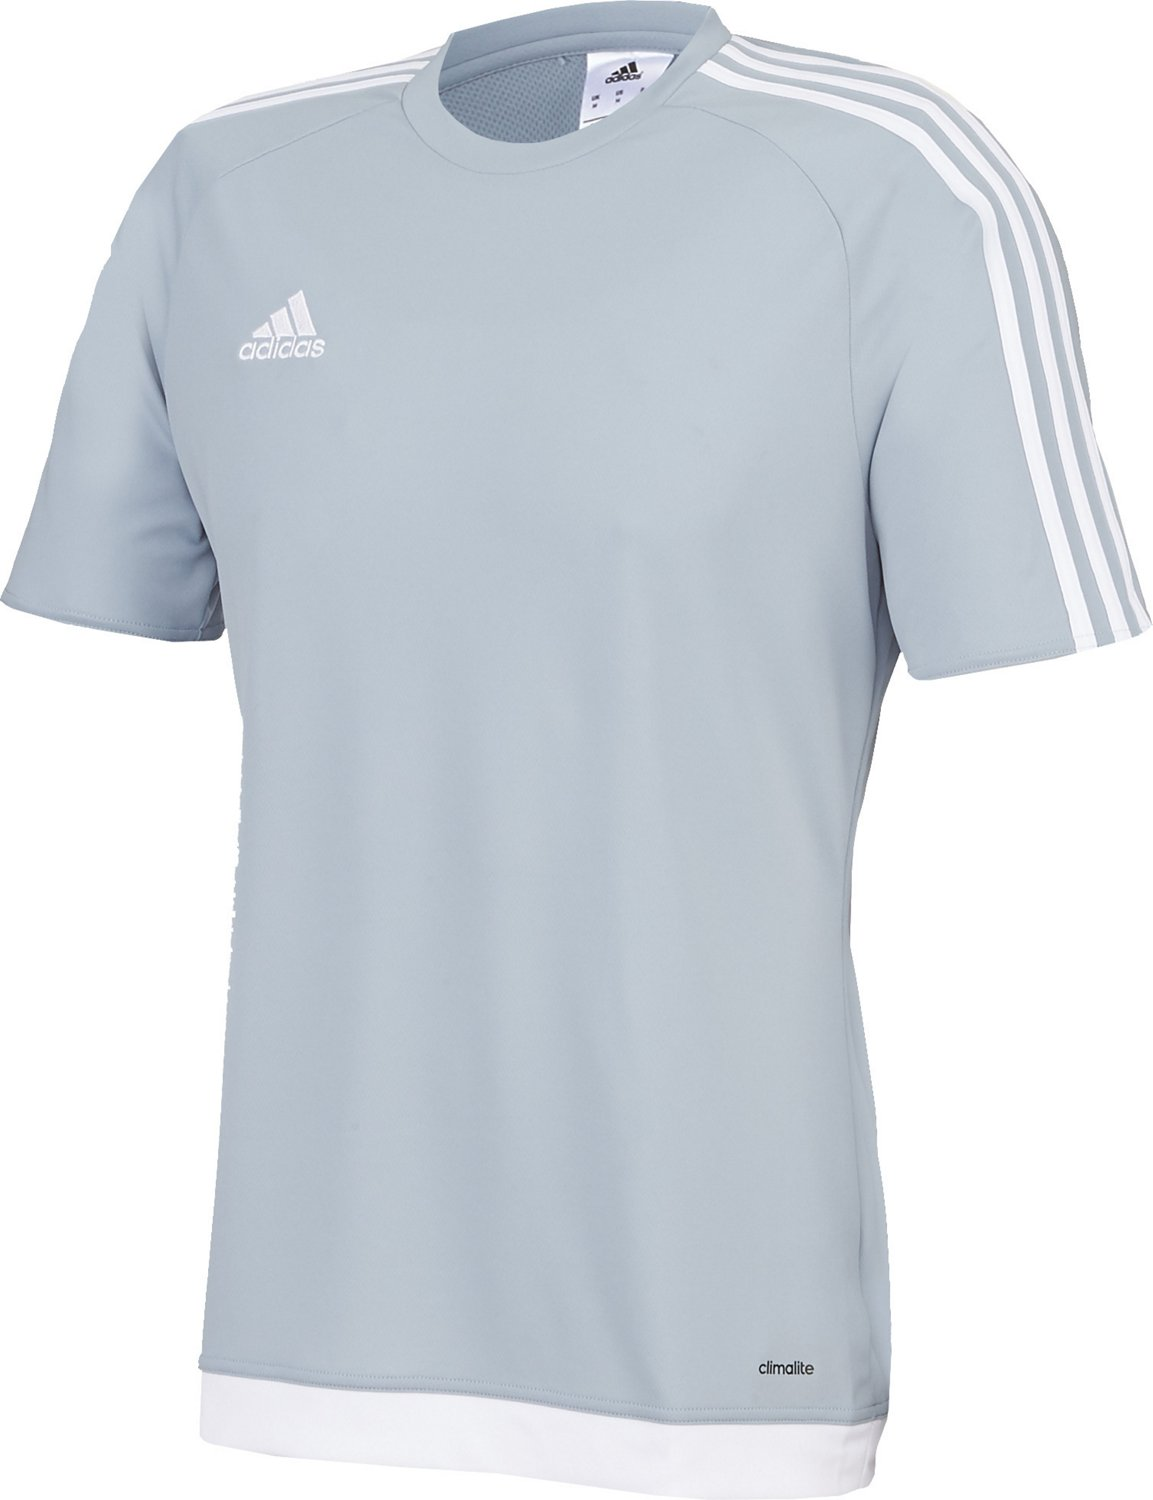 371c1cd80bb Display product reviews for adidas Men s Estro 15 Soccer Jersey